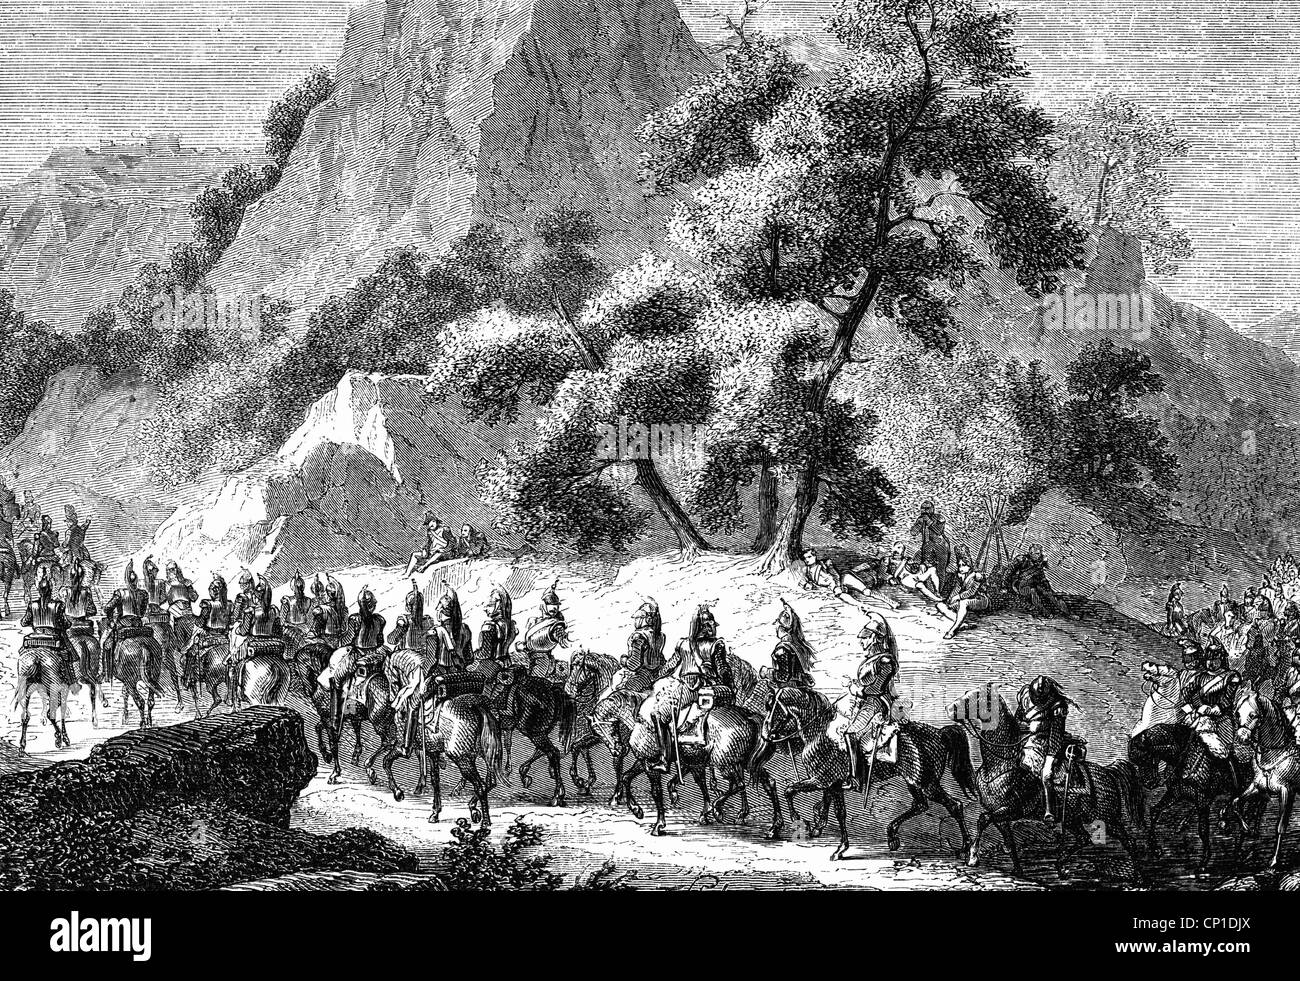 events, Peninsular War 1808 - 1814, French invasion of Spain in 1808, troops under the command of Joachim Murat - Stock Image